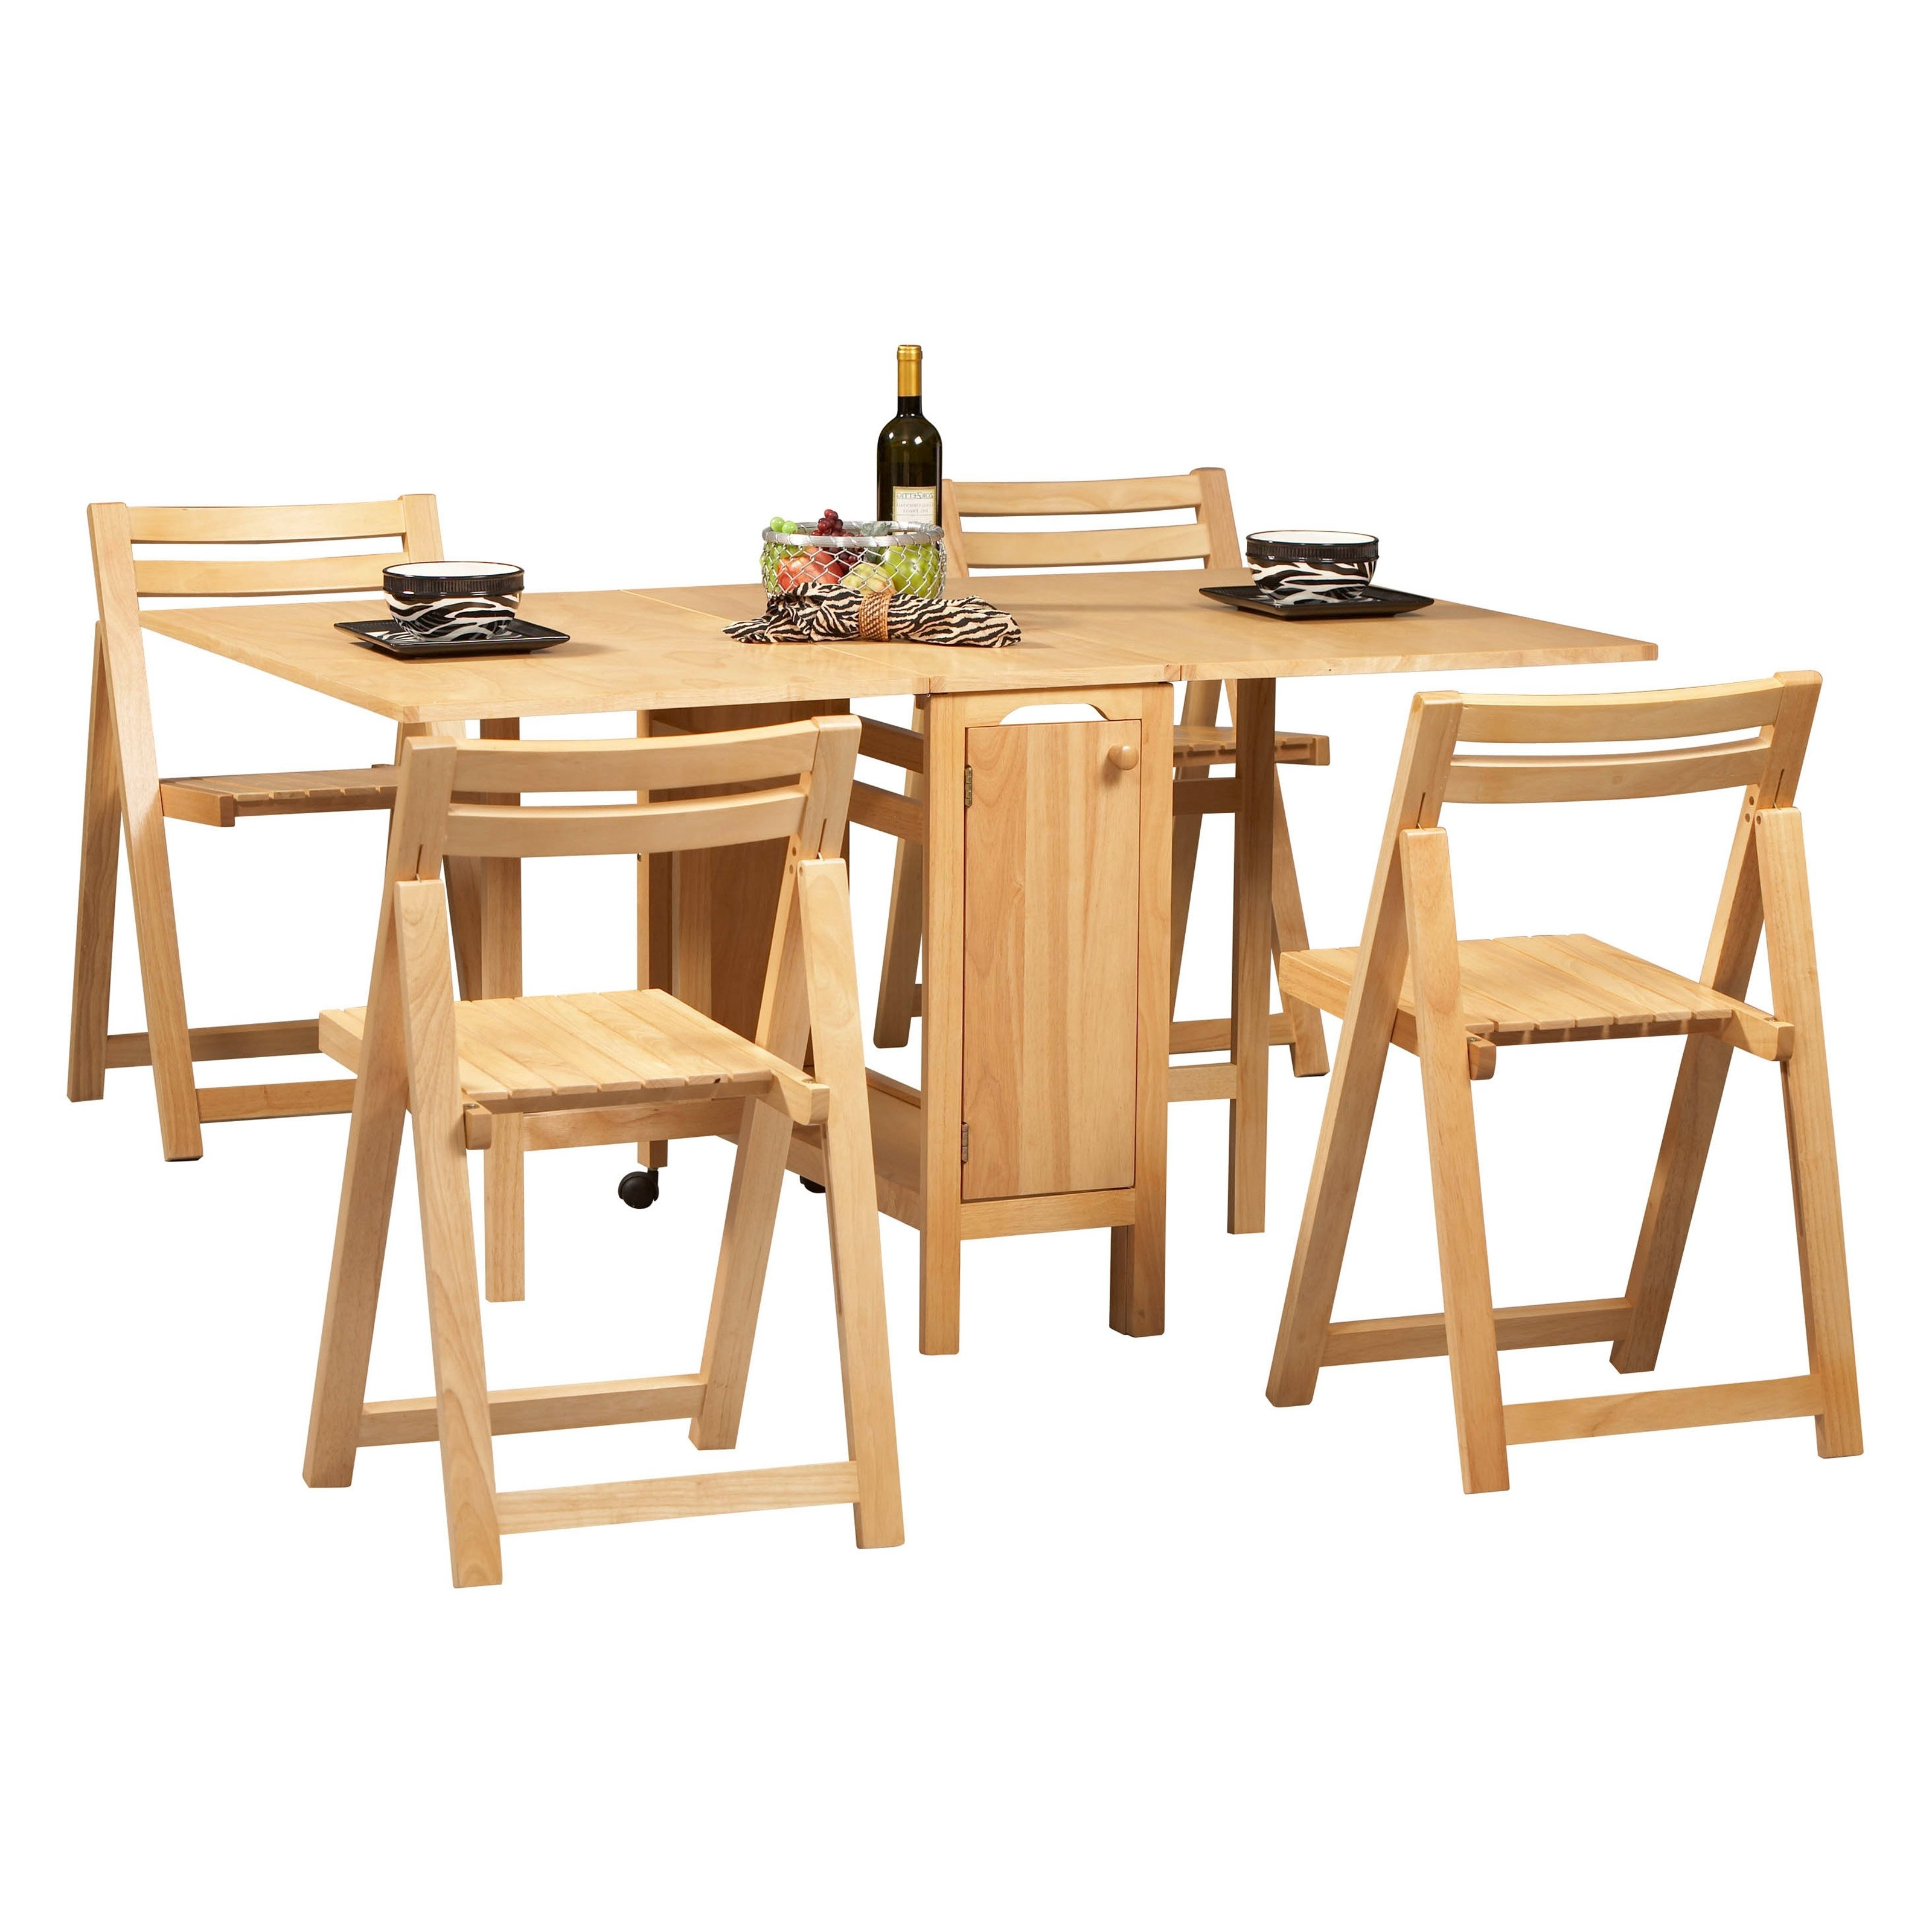 Folding Dining Table And Chairs Sets Intended For Most Current Folding Dining Table Sets – Castrophotos (View 2 of 25)